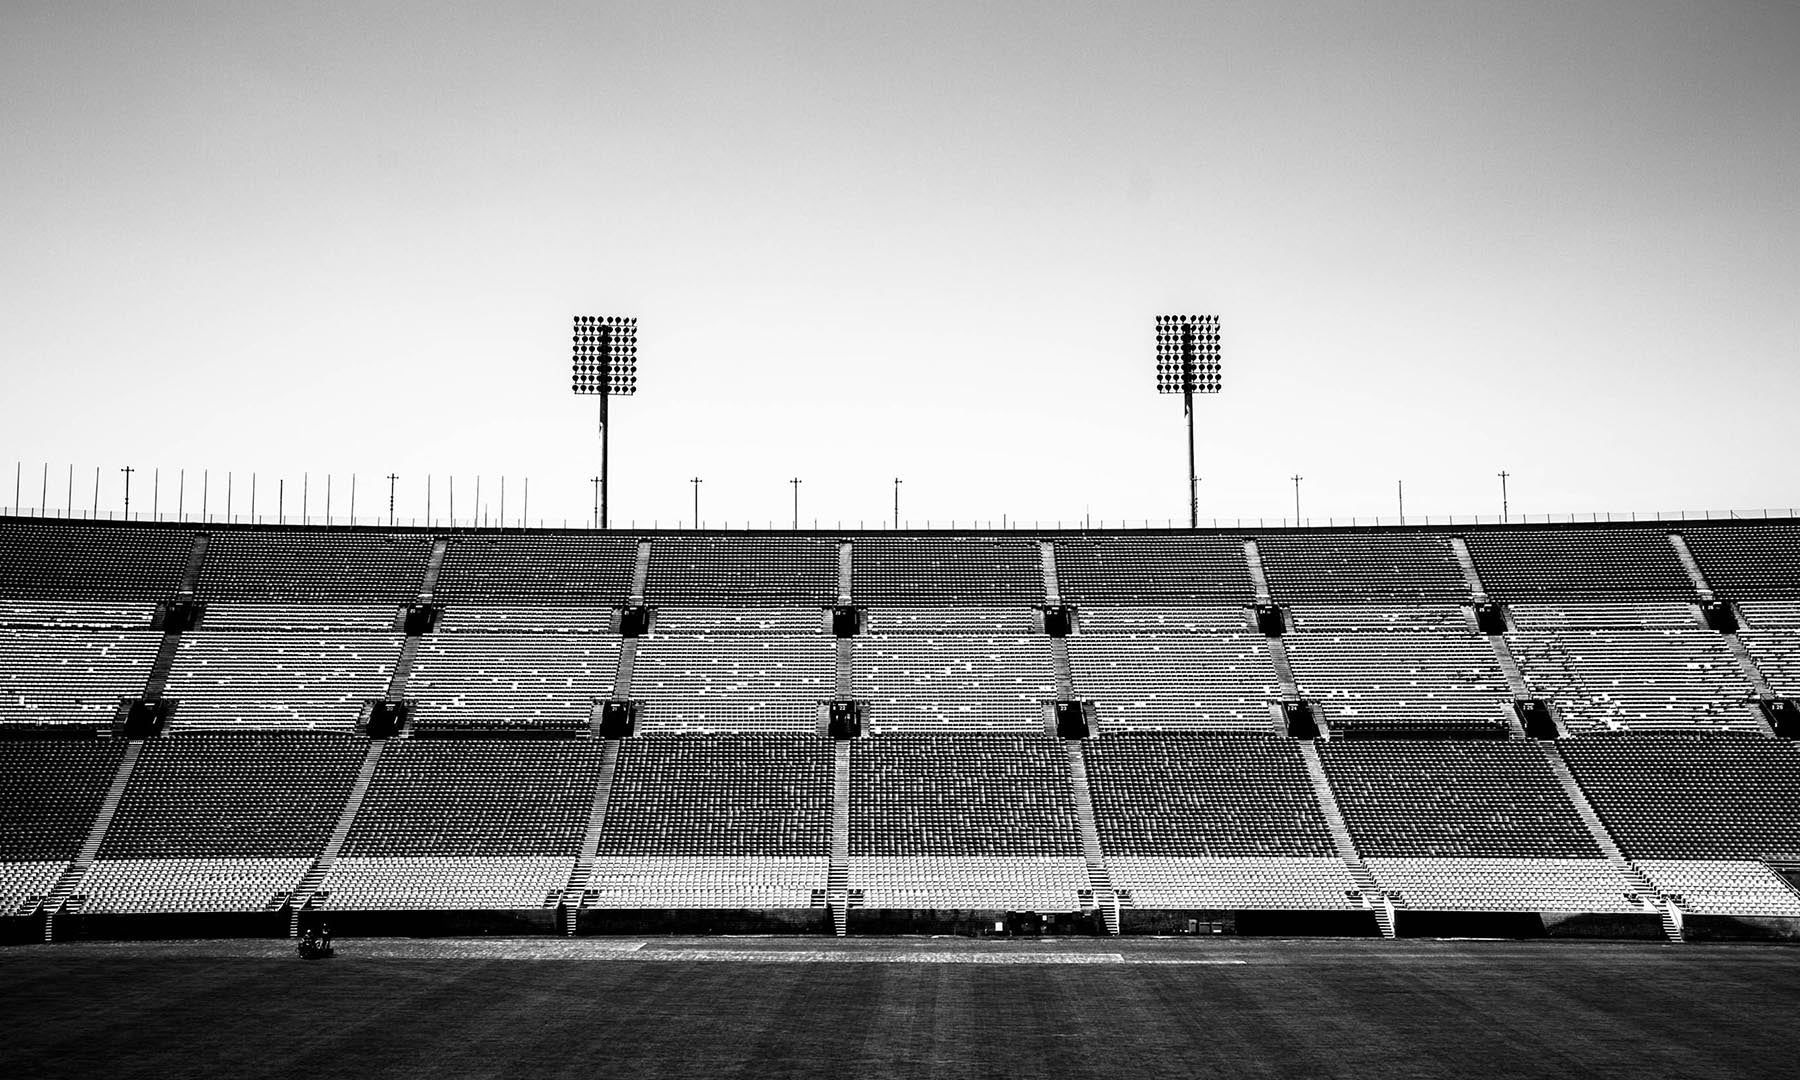 Black and white image of a sports stadium